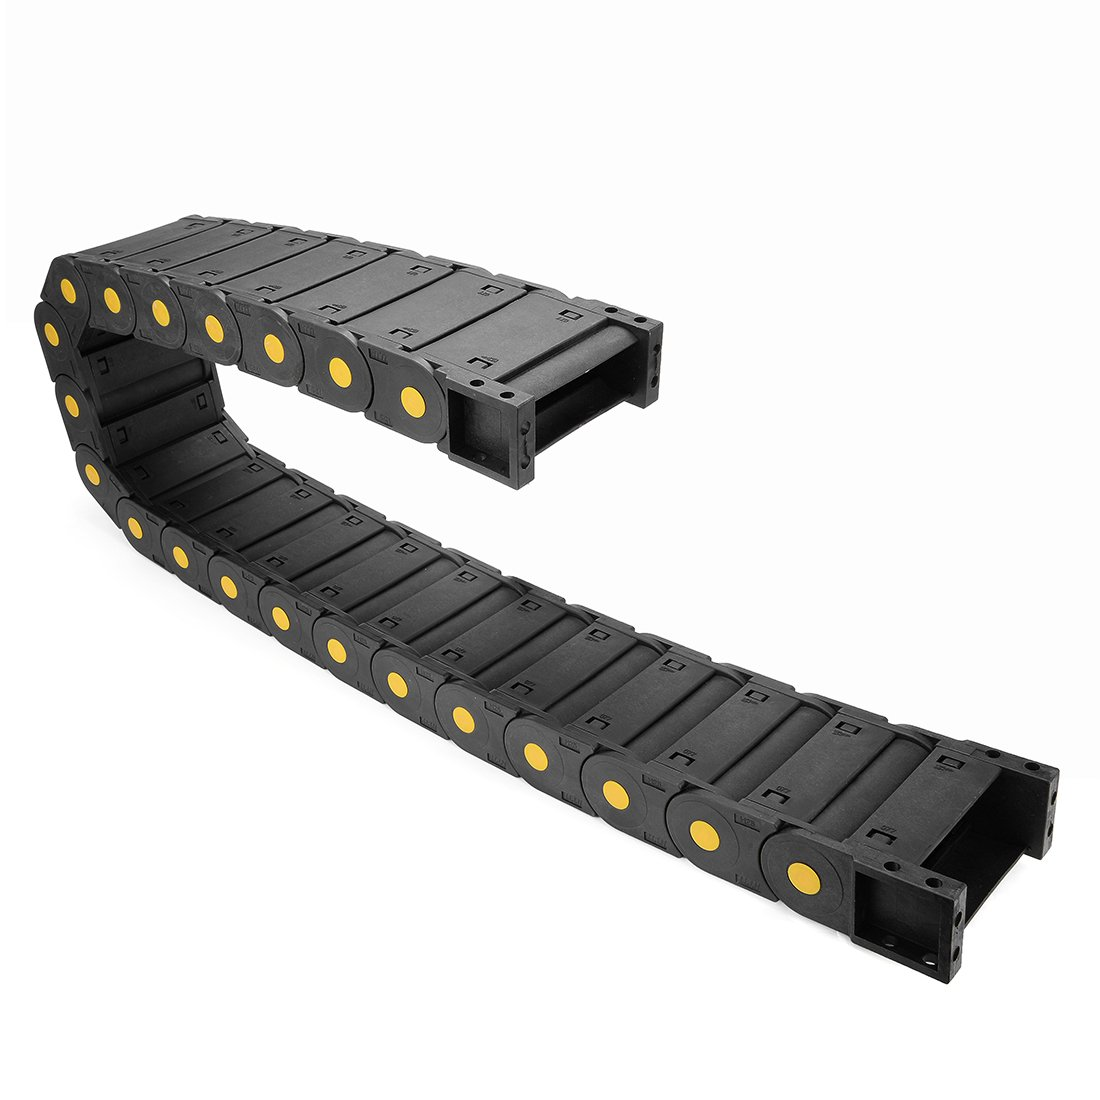 uxcell R55 25mm x 77mm Plastic Closed can Open Cable Drag Chain Wire Carrier 1M Long by uxcell